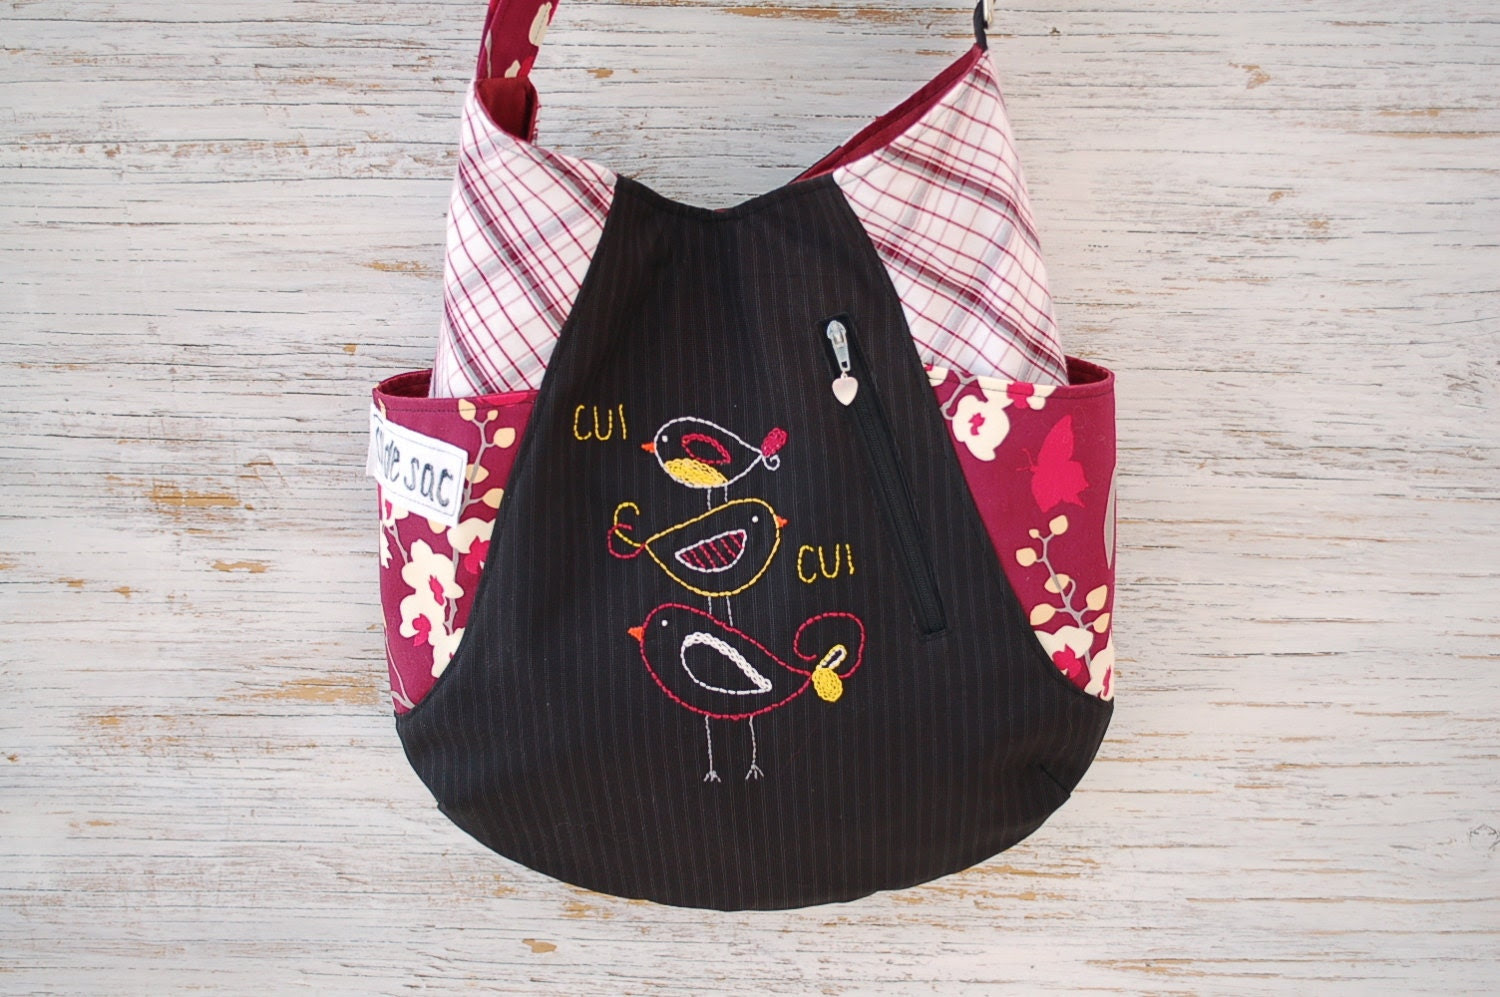 Eco-friendly 241 tote, made from upcycled materials in black and red with hand embroidery